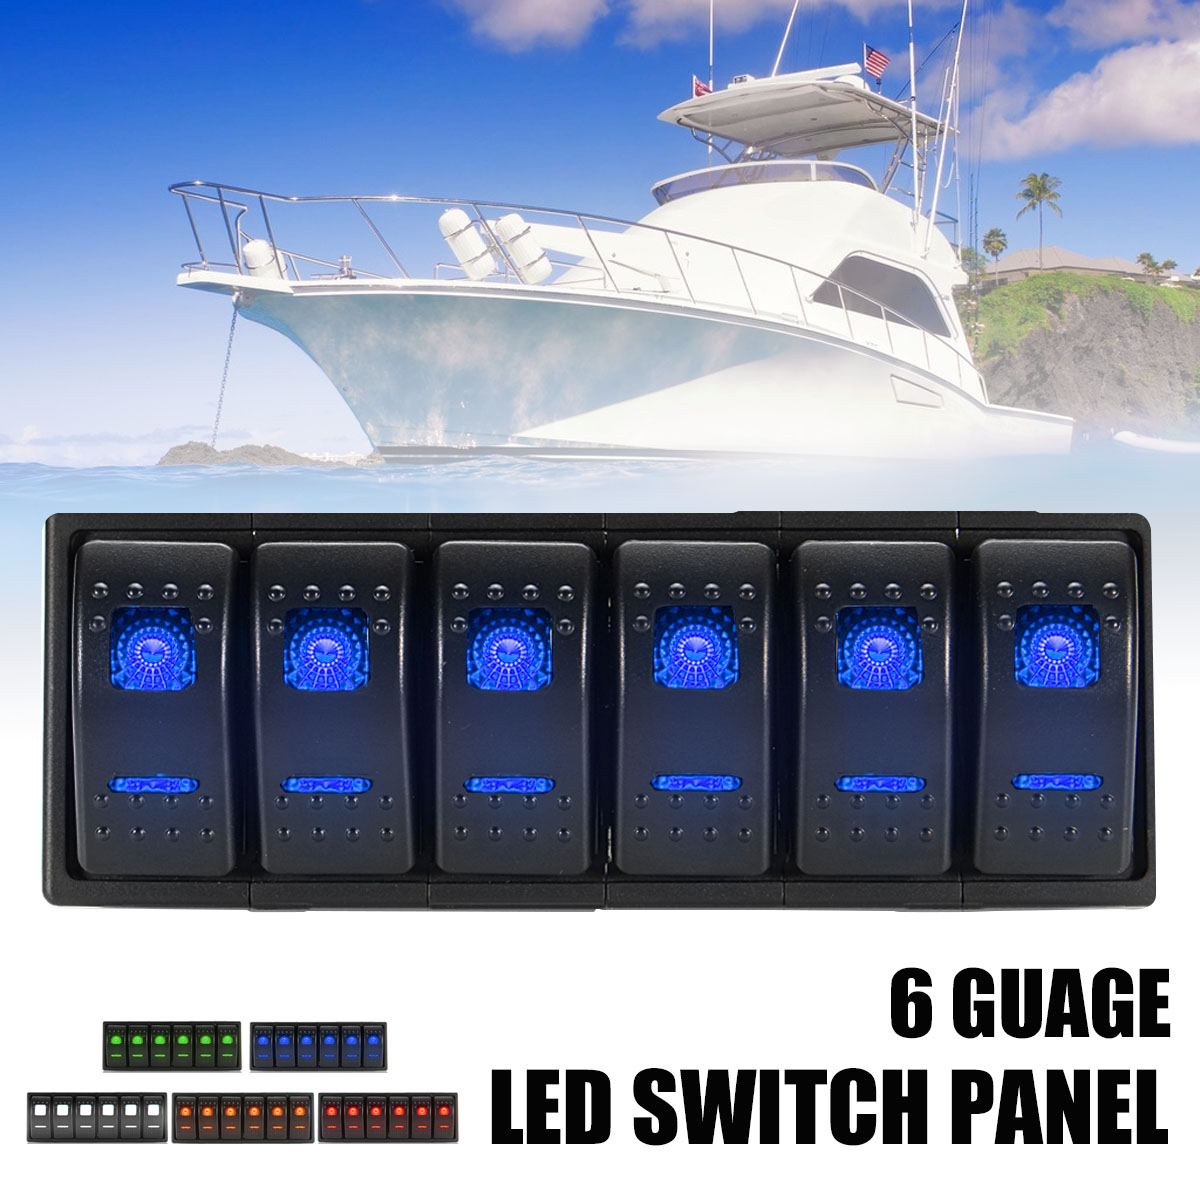 6 Led 12v 24v Rocker Switch Panel On Off Motorboat Marine W Jumper Boat Caravan 4 Gang Circuit Breaker Alex Nld Package Included 1 X 2 Stickers Instructions Are Not More Detailed Photos